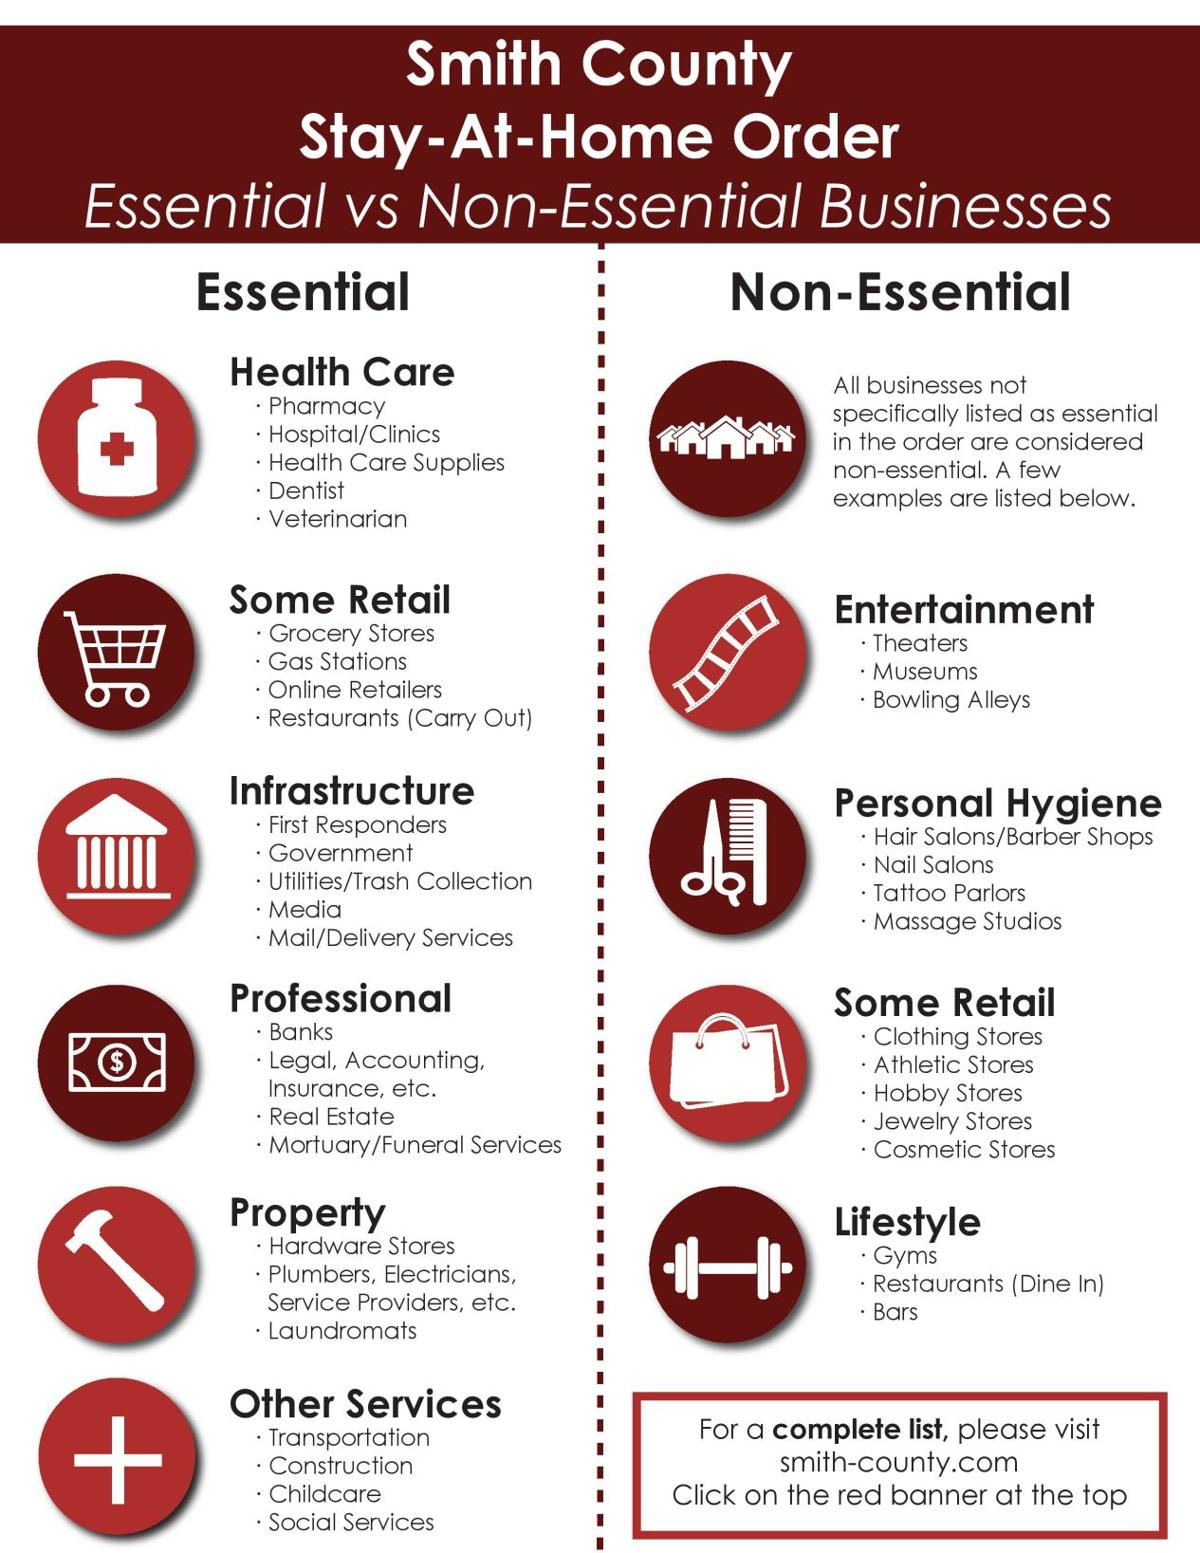 Essential vs. Non-Essential Business